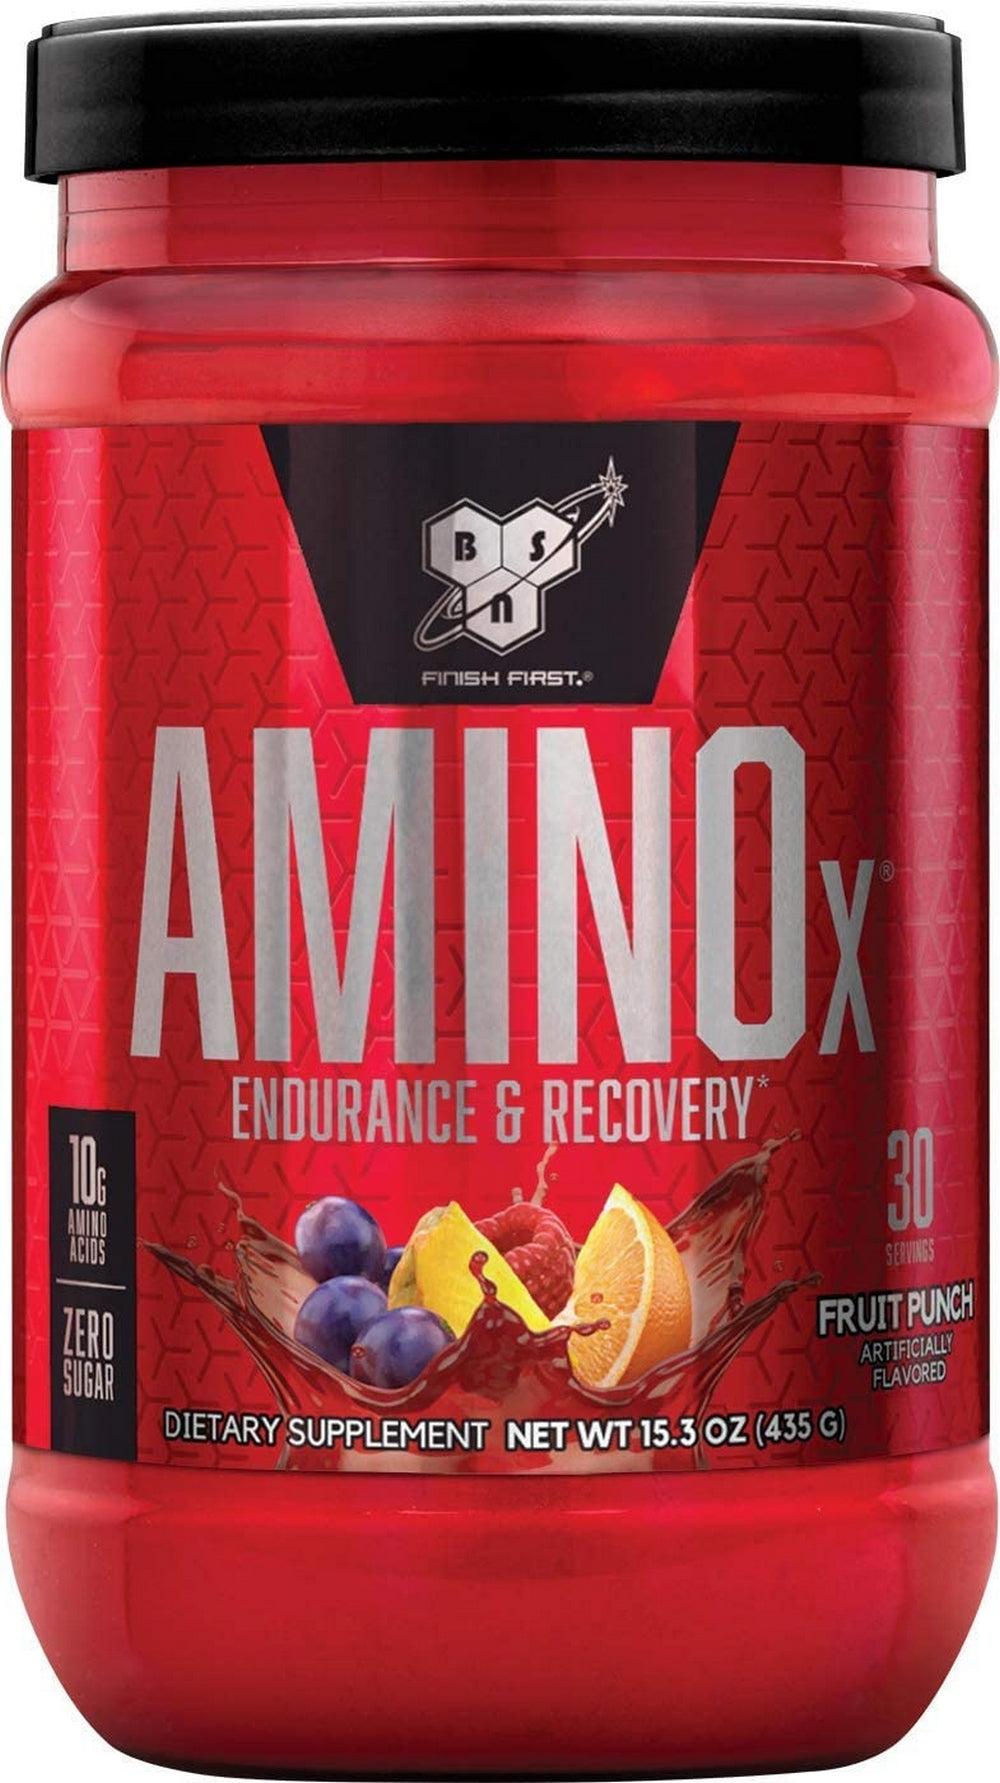 BSN Amino X Muscle Recovery & Endurance Powder with BCAAs | Edmonds Health Goods Store